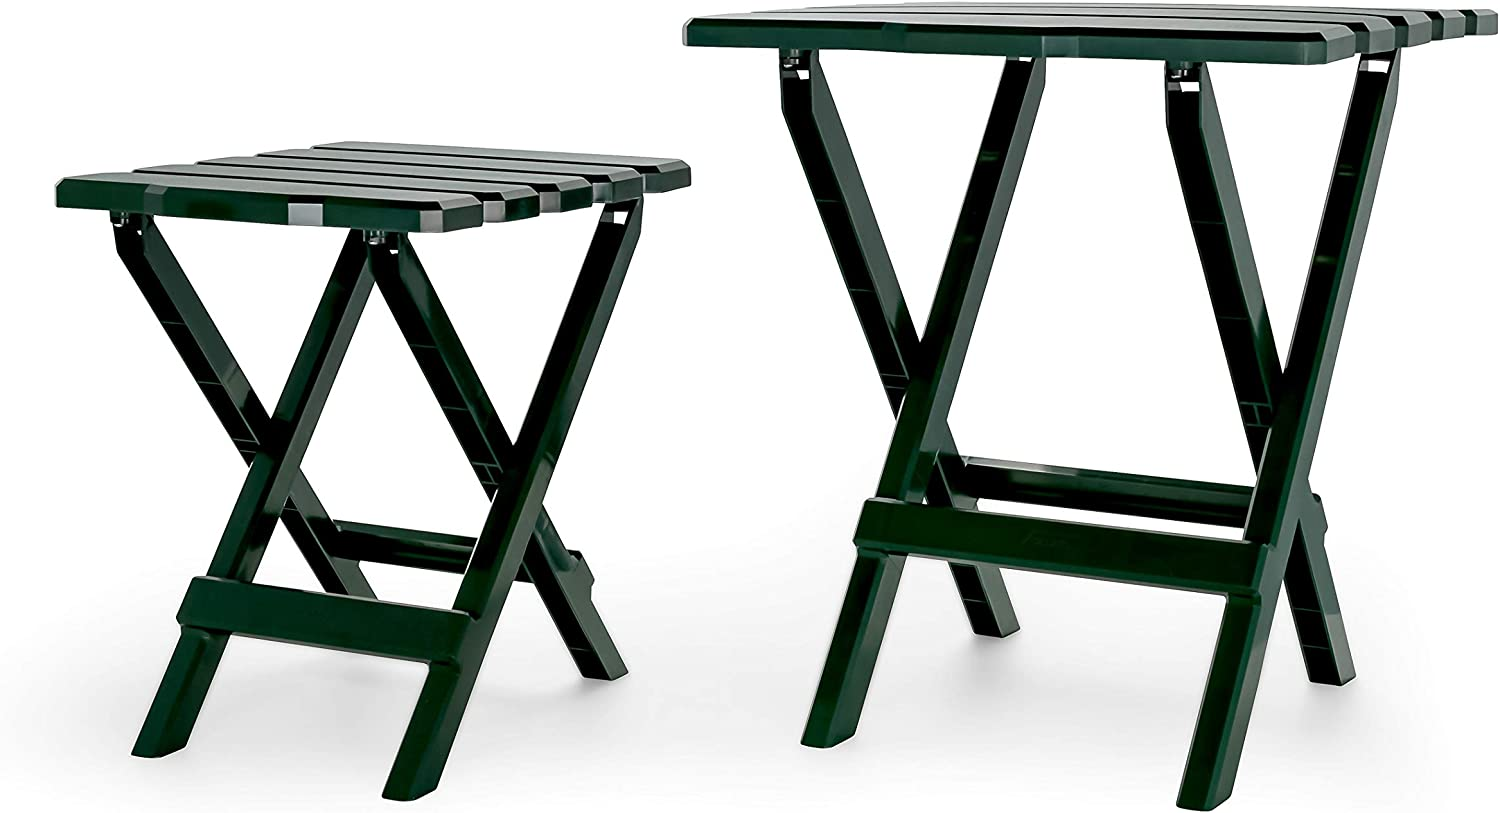 Picnics Cookouts and More-Weatherproof and Rust Resistant-Green Camco Adirondack Portable Outdoor Folding Side Table-Perfect for The Beach 21031 Camping